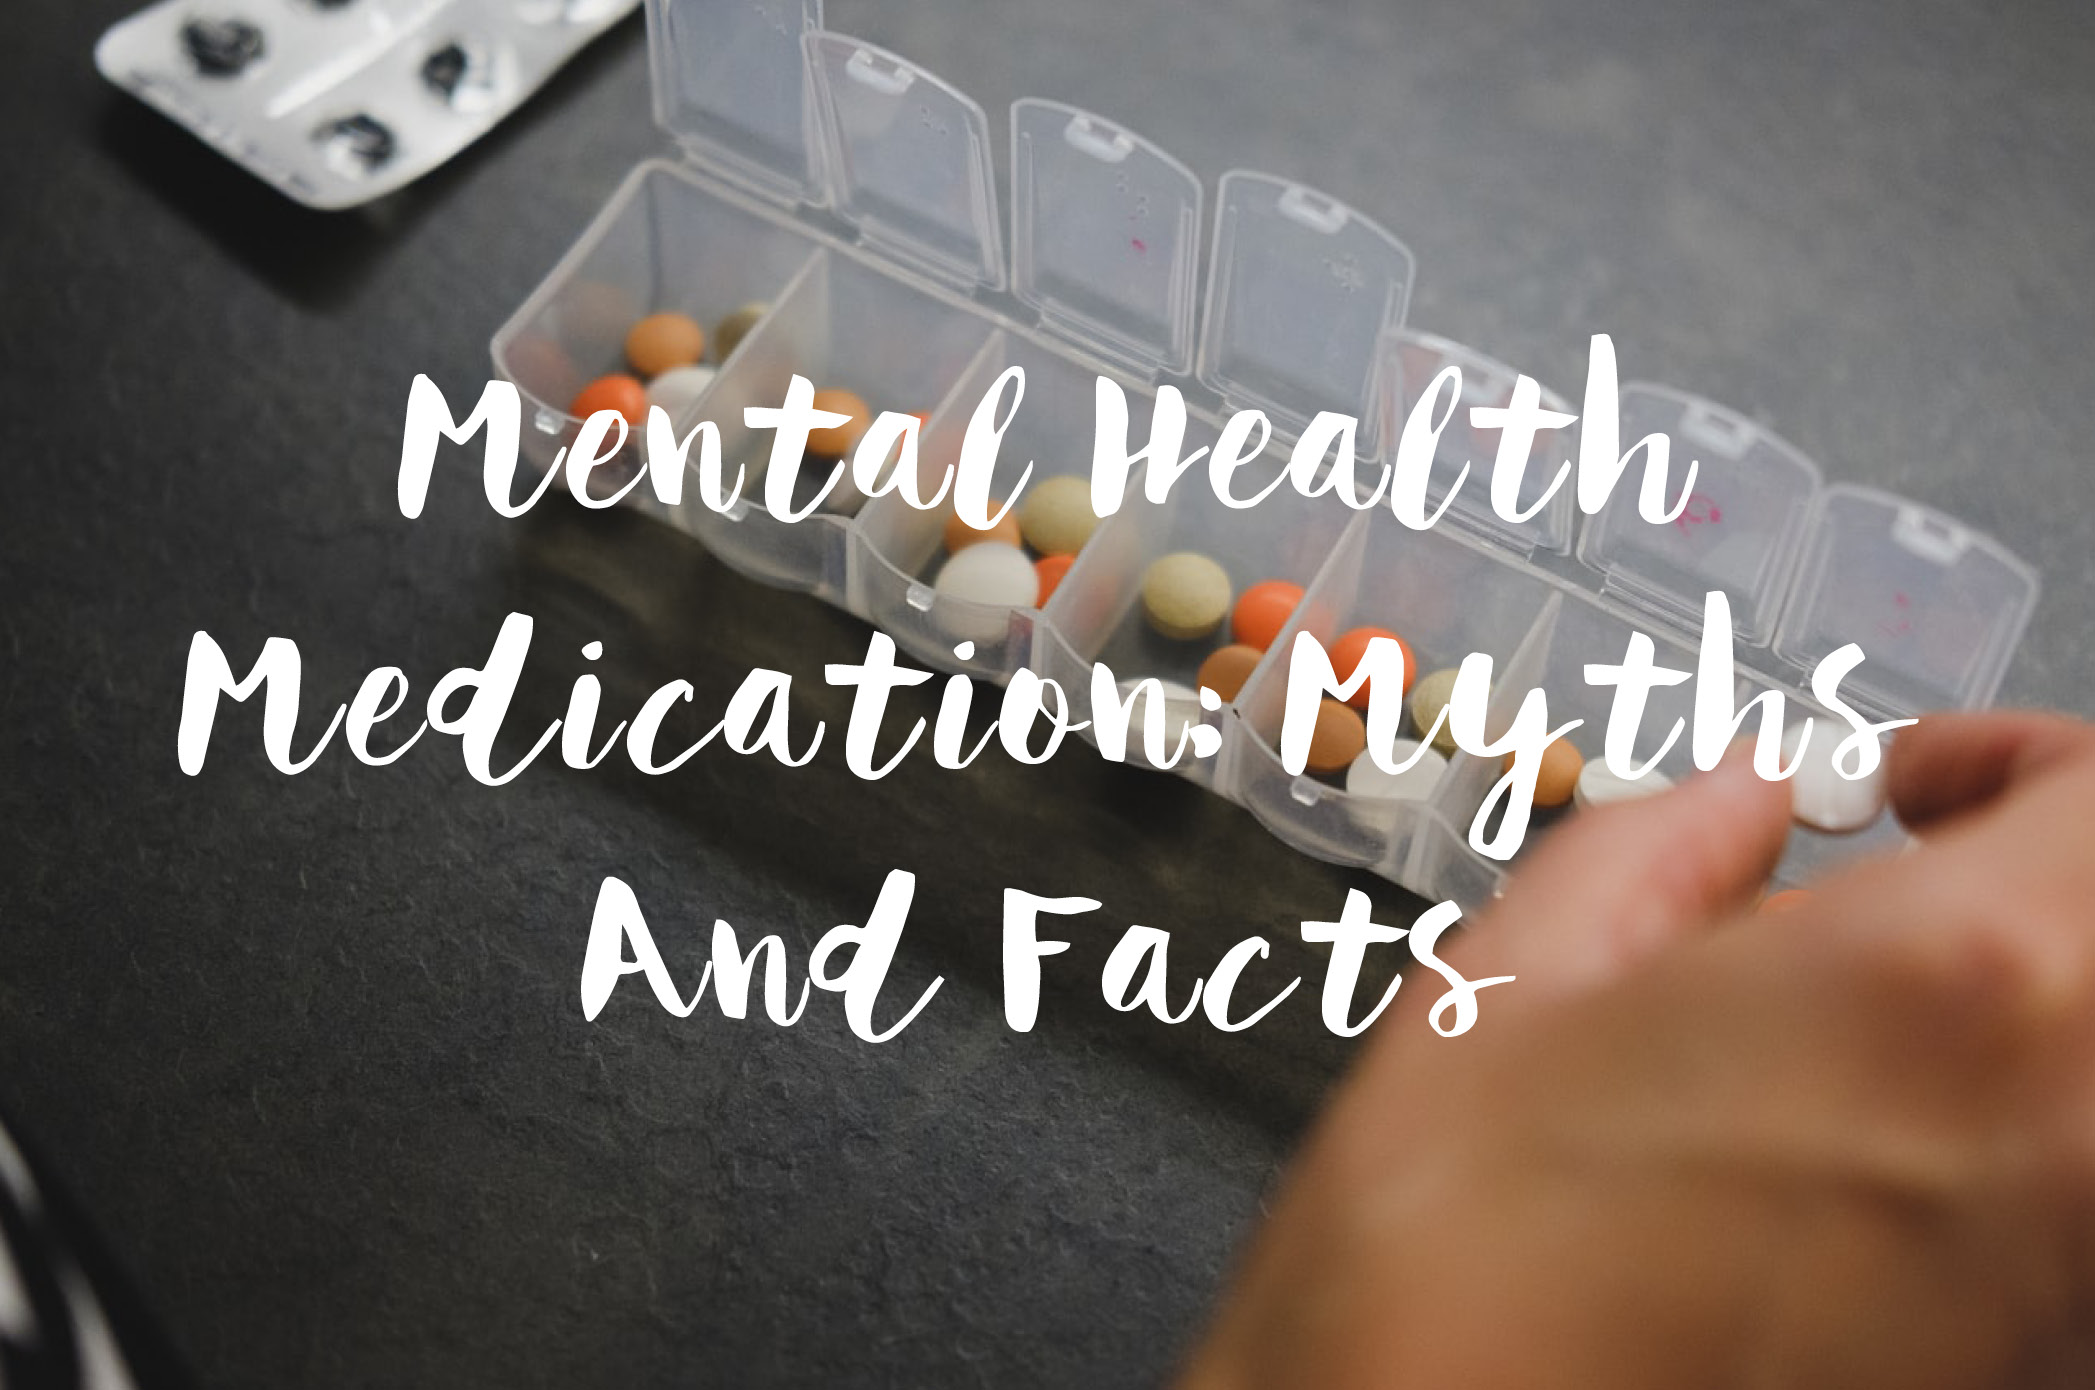 Mental Health Medication: Myths And Facts